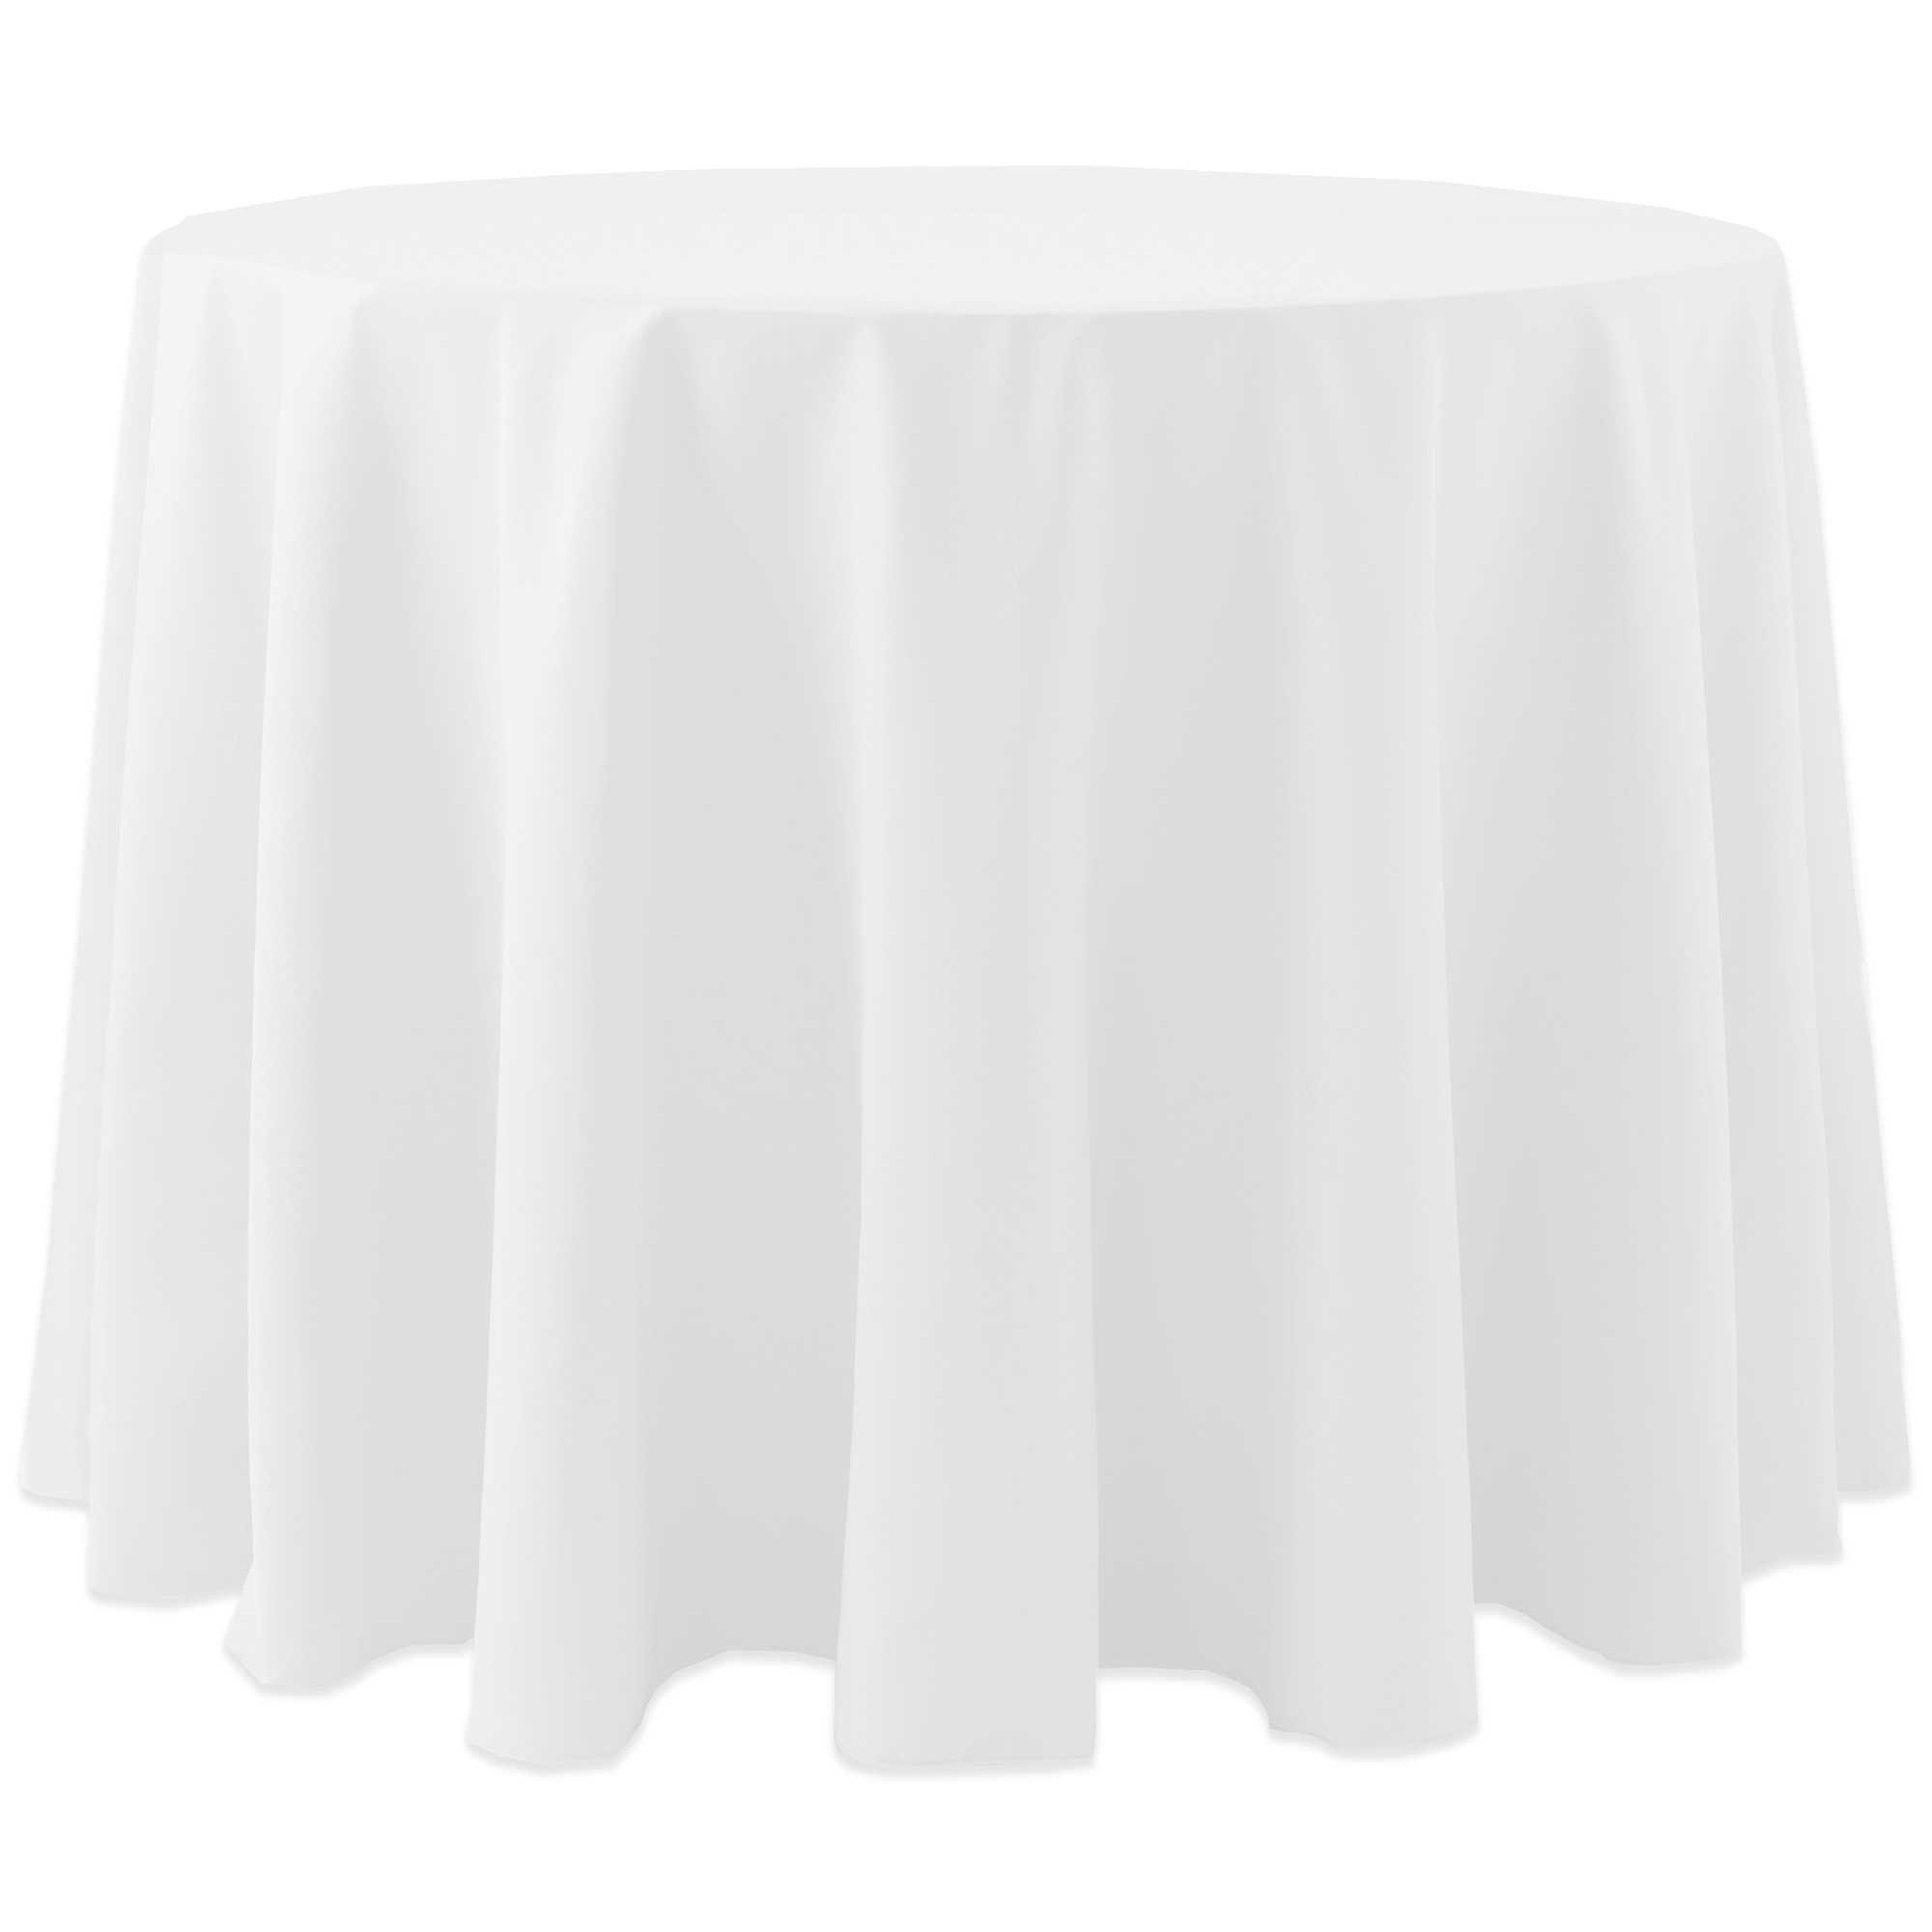 Ultimate Textile (10 Pack) Cotton-feel Spun Polyester 90-Inch Round Tablecloth - for Wedding and Banquet, Hotel or Home Fine Dining use, White